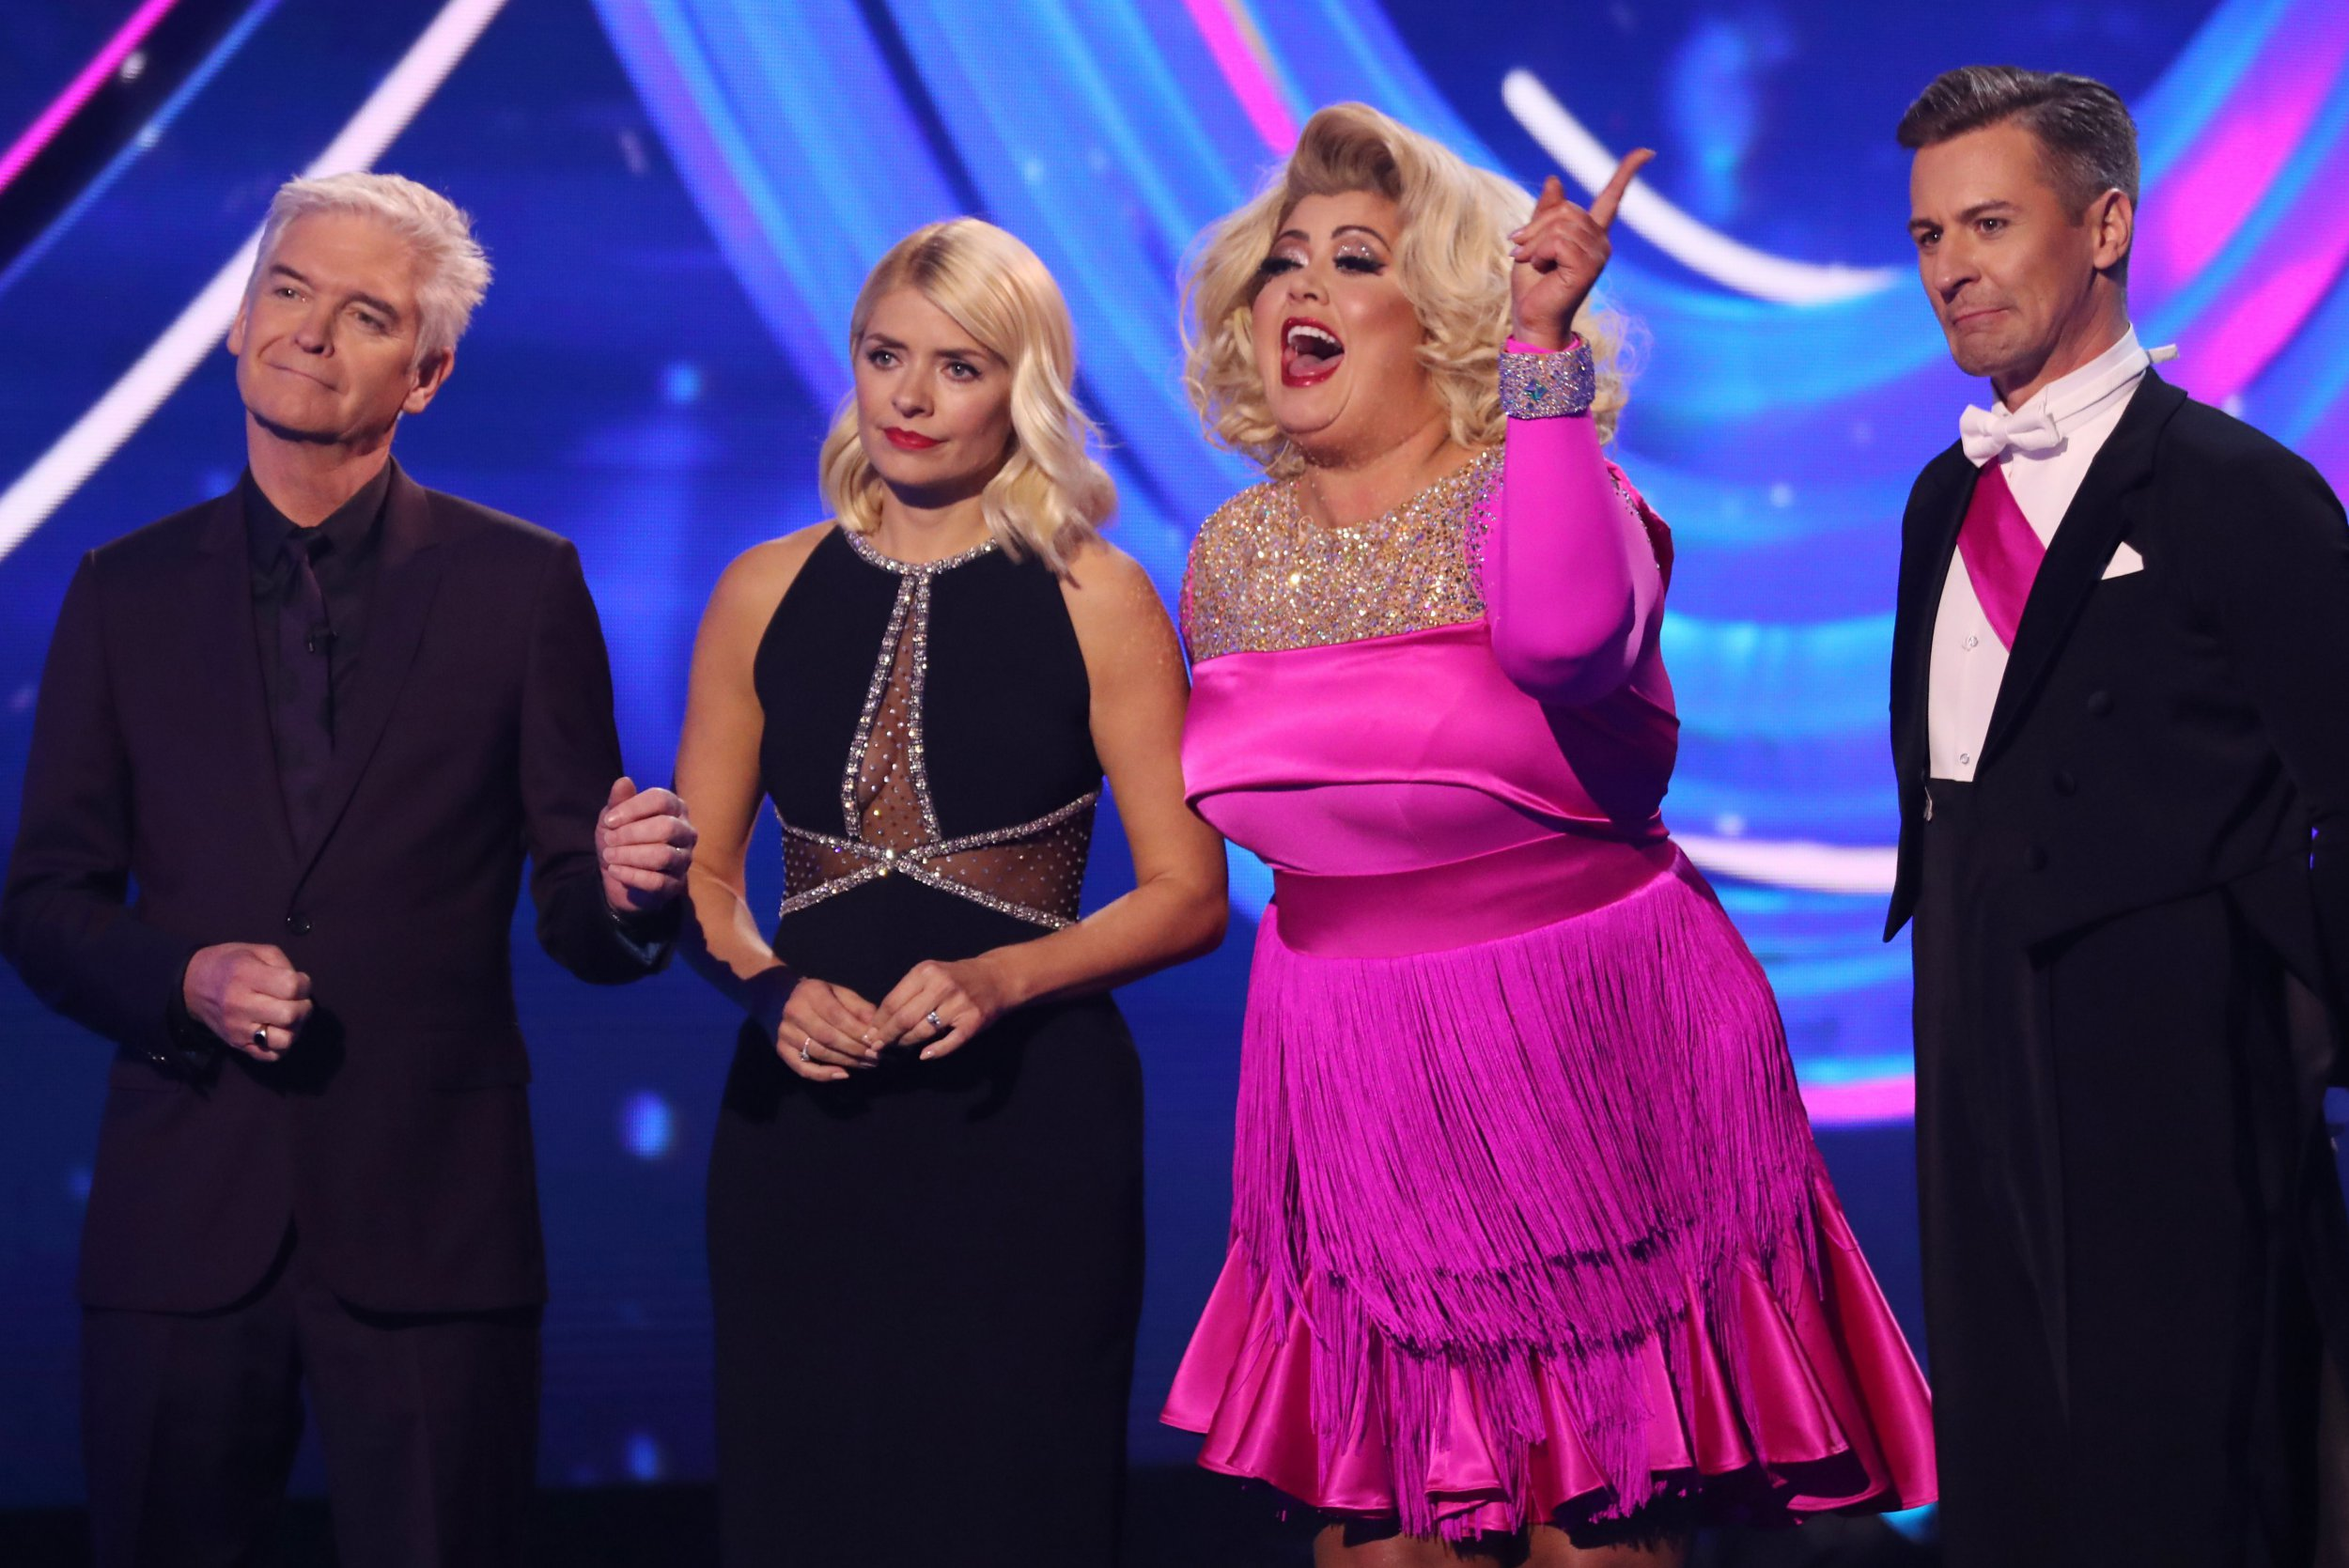 What happened between Gemma Collins and Jason Gardiner on Dancing On Ice?